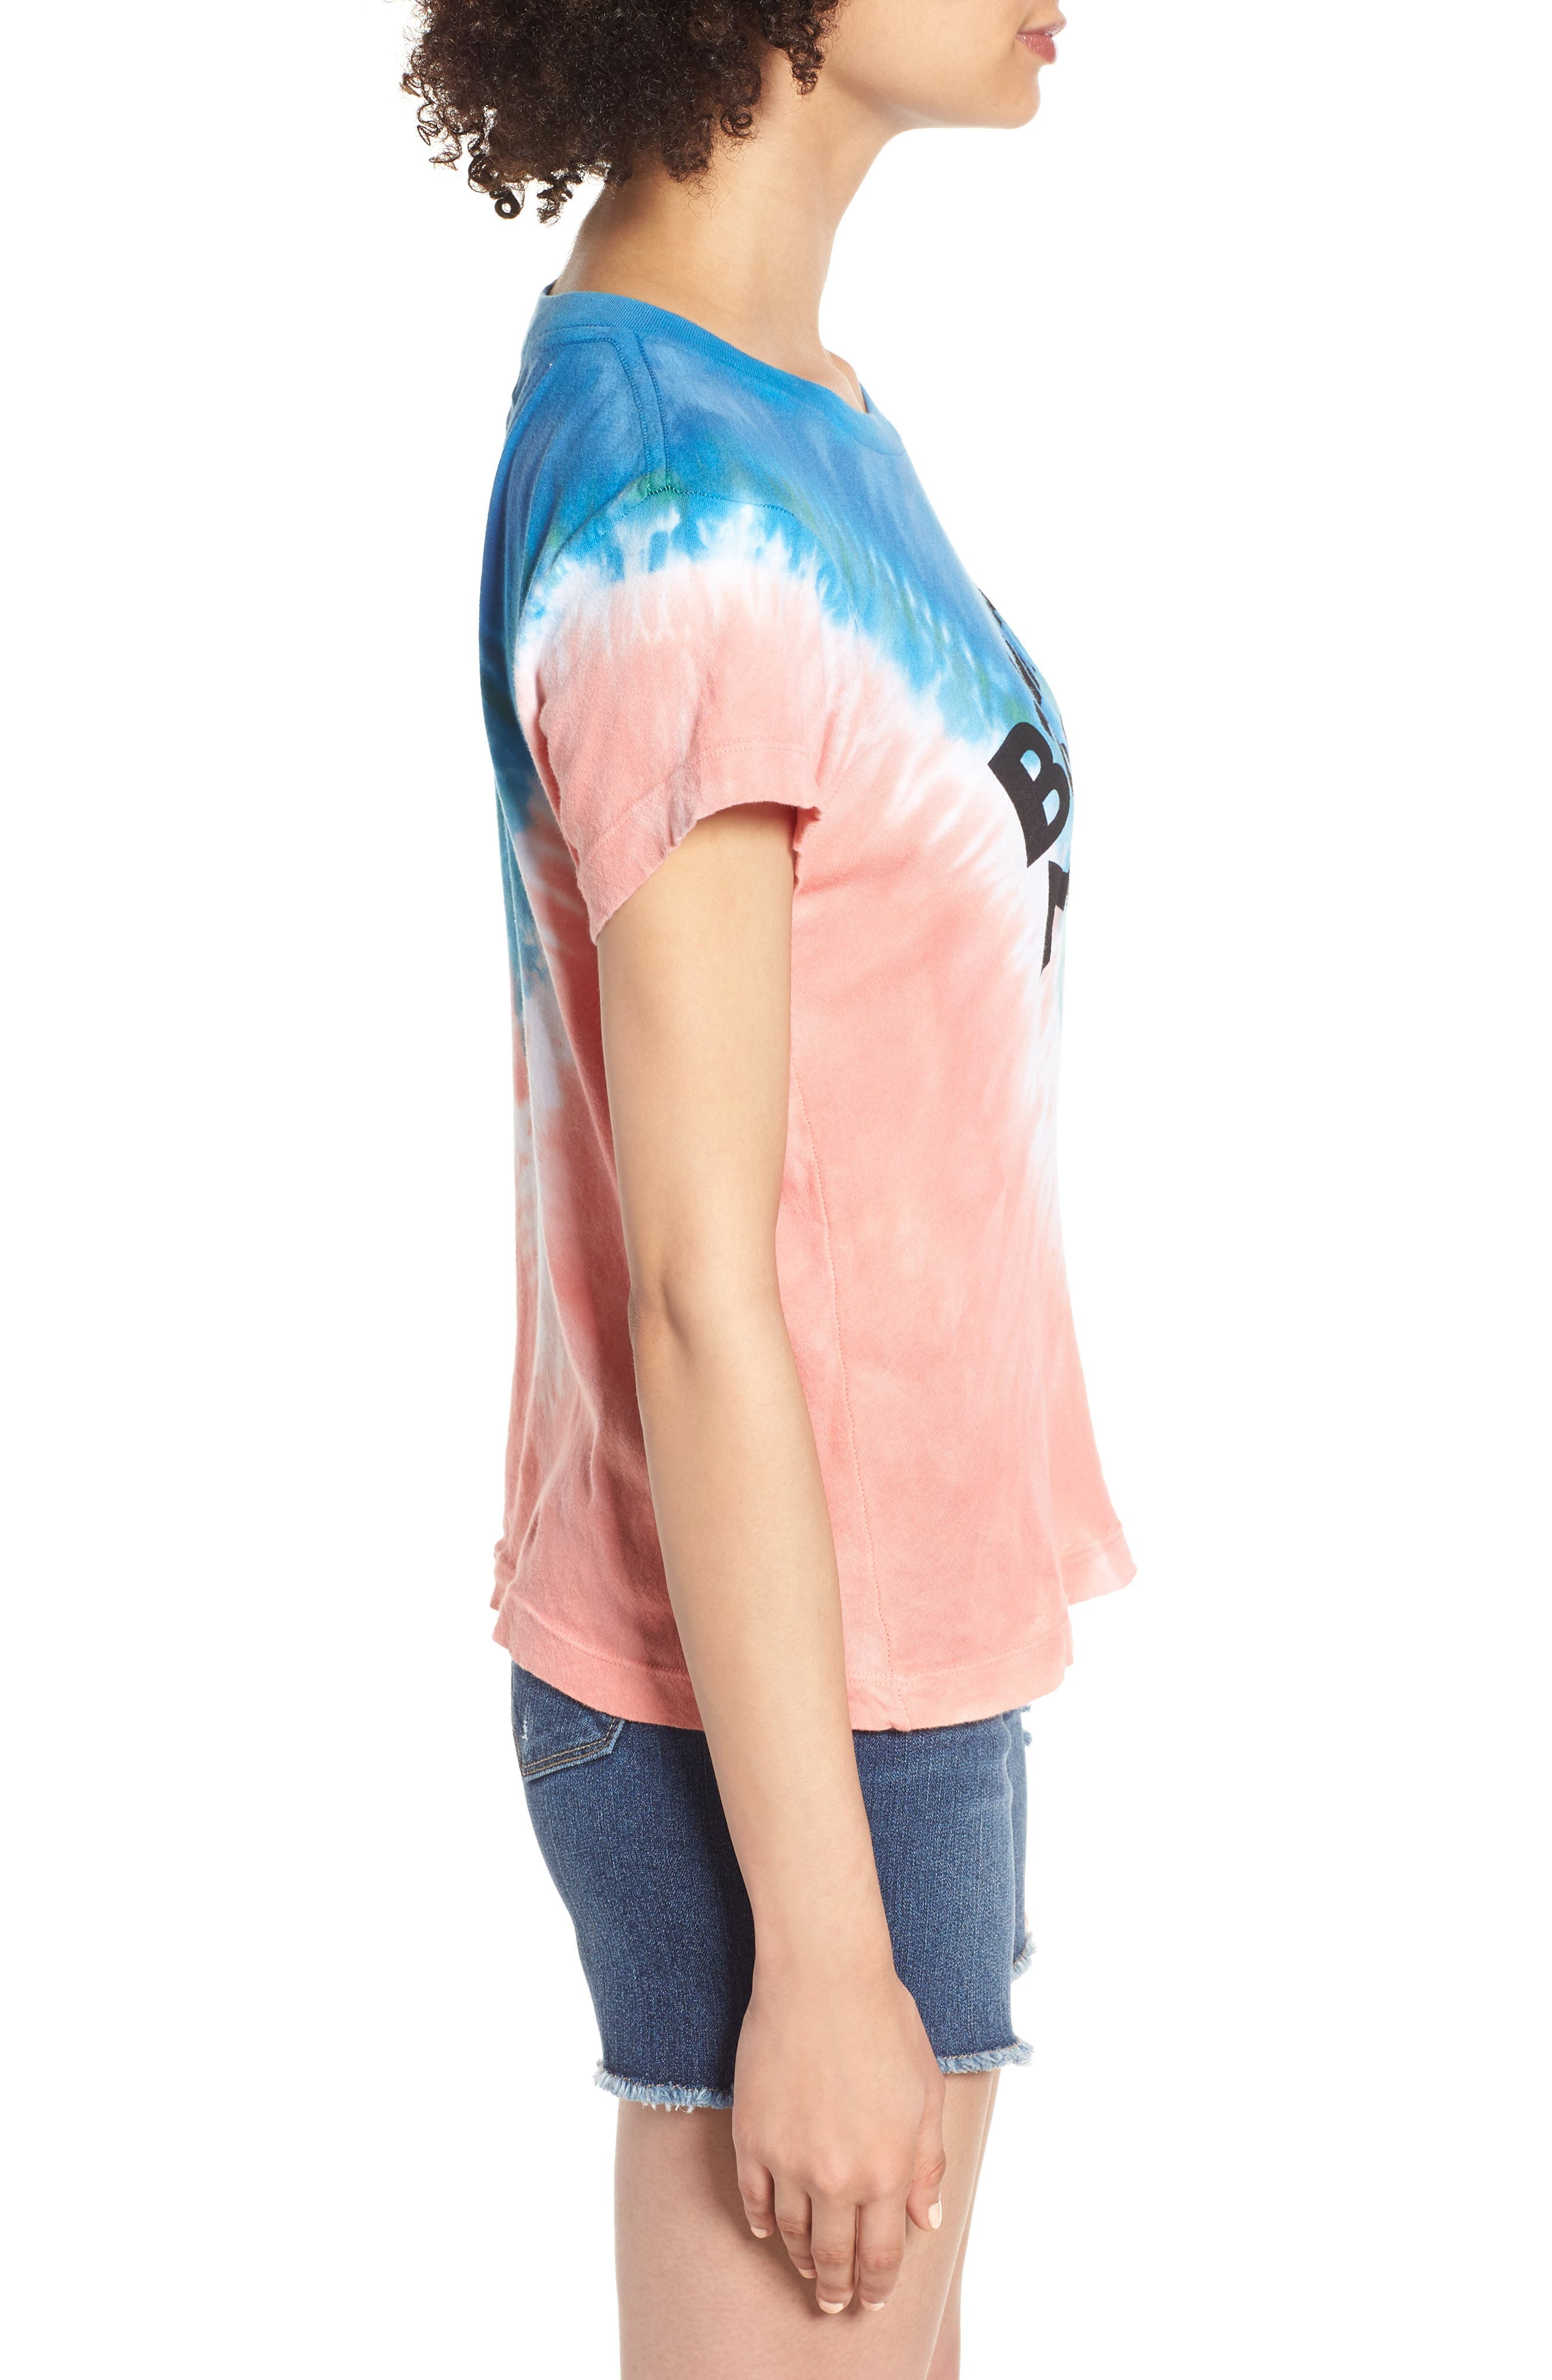 Bahama Mama No9 Tee,                             Alternate thumbnail 3, color,                             Pacific Tie Dye